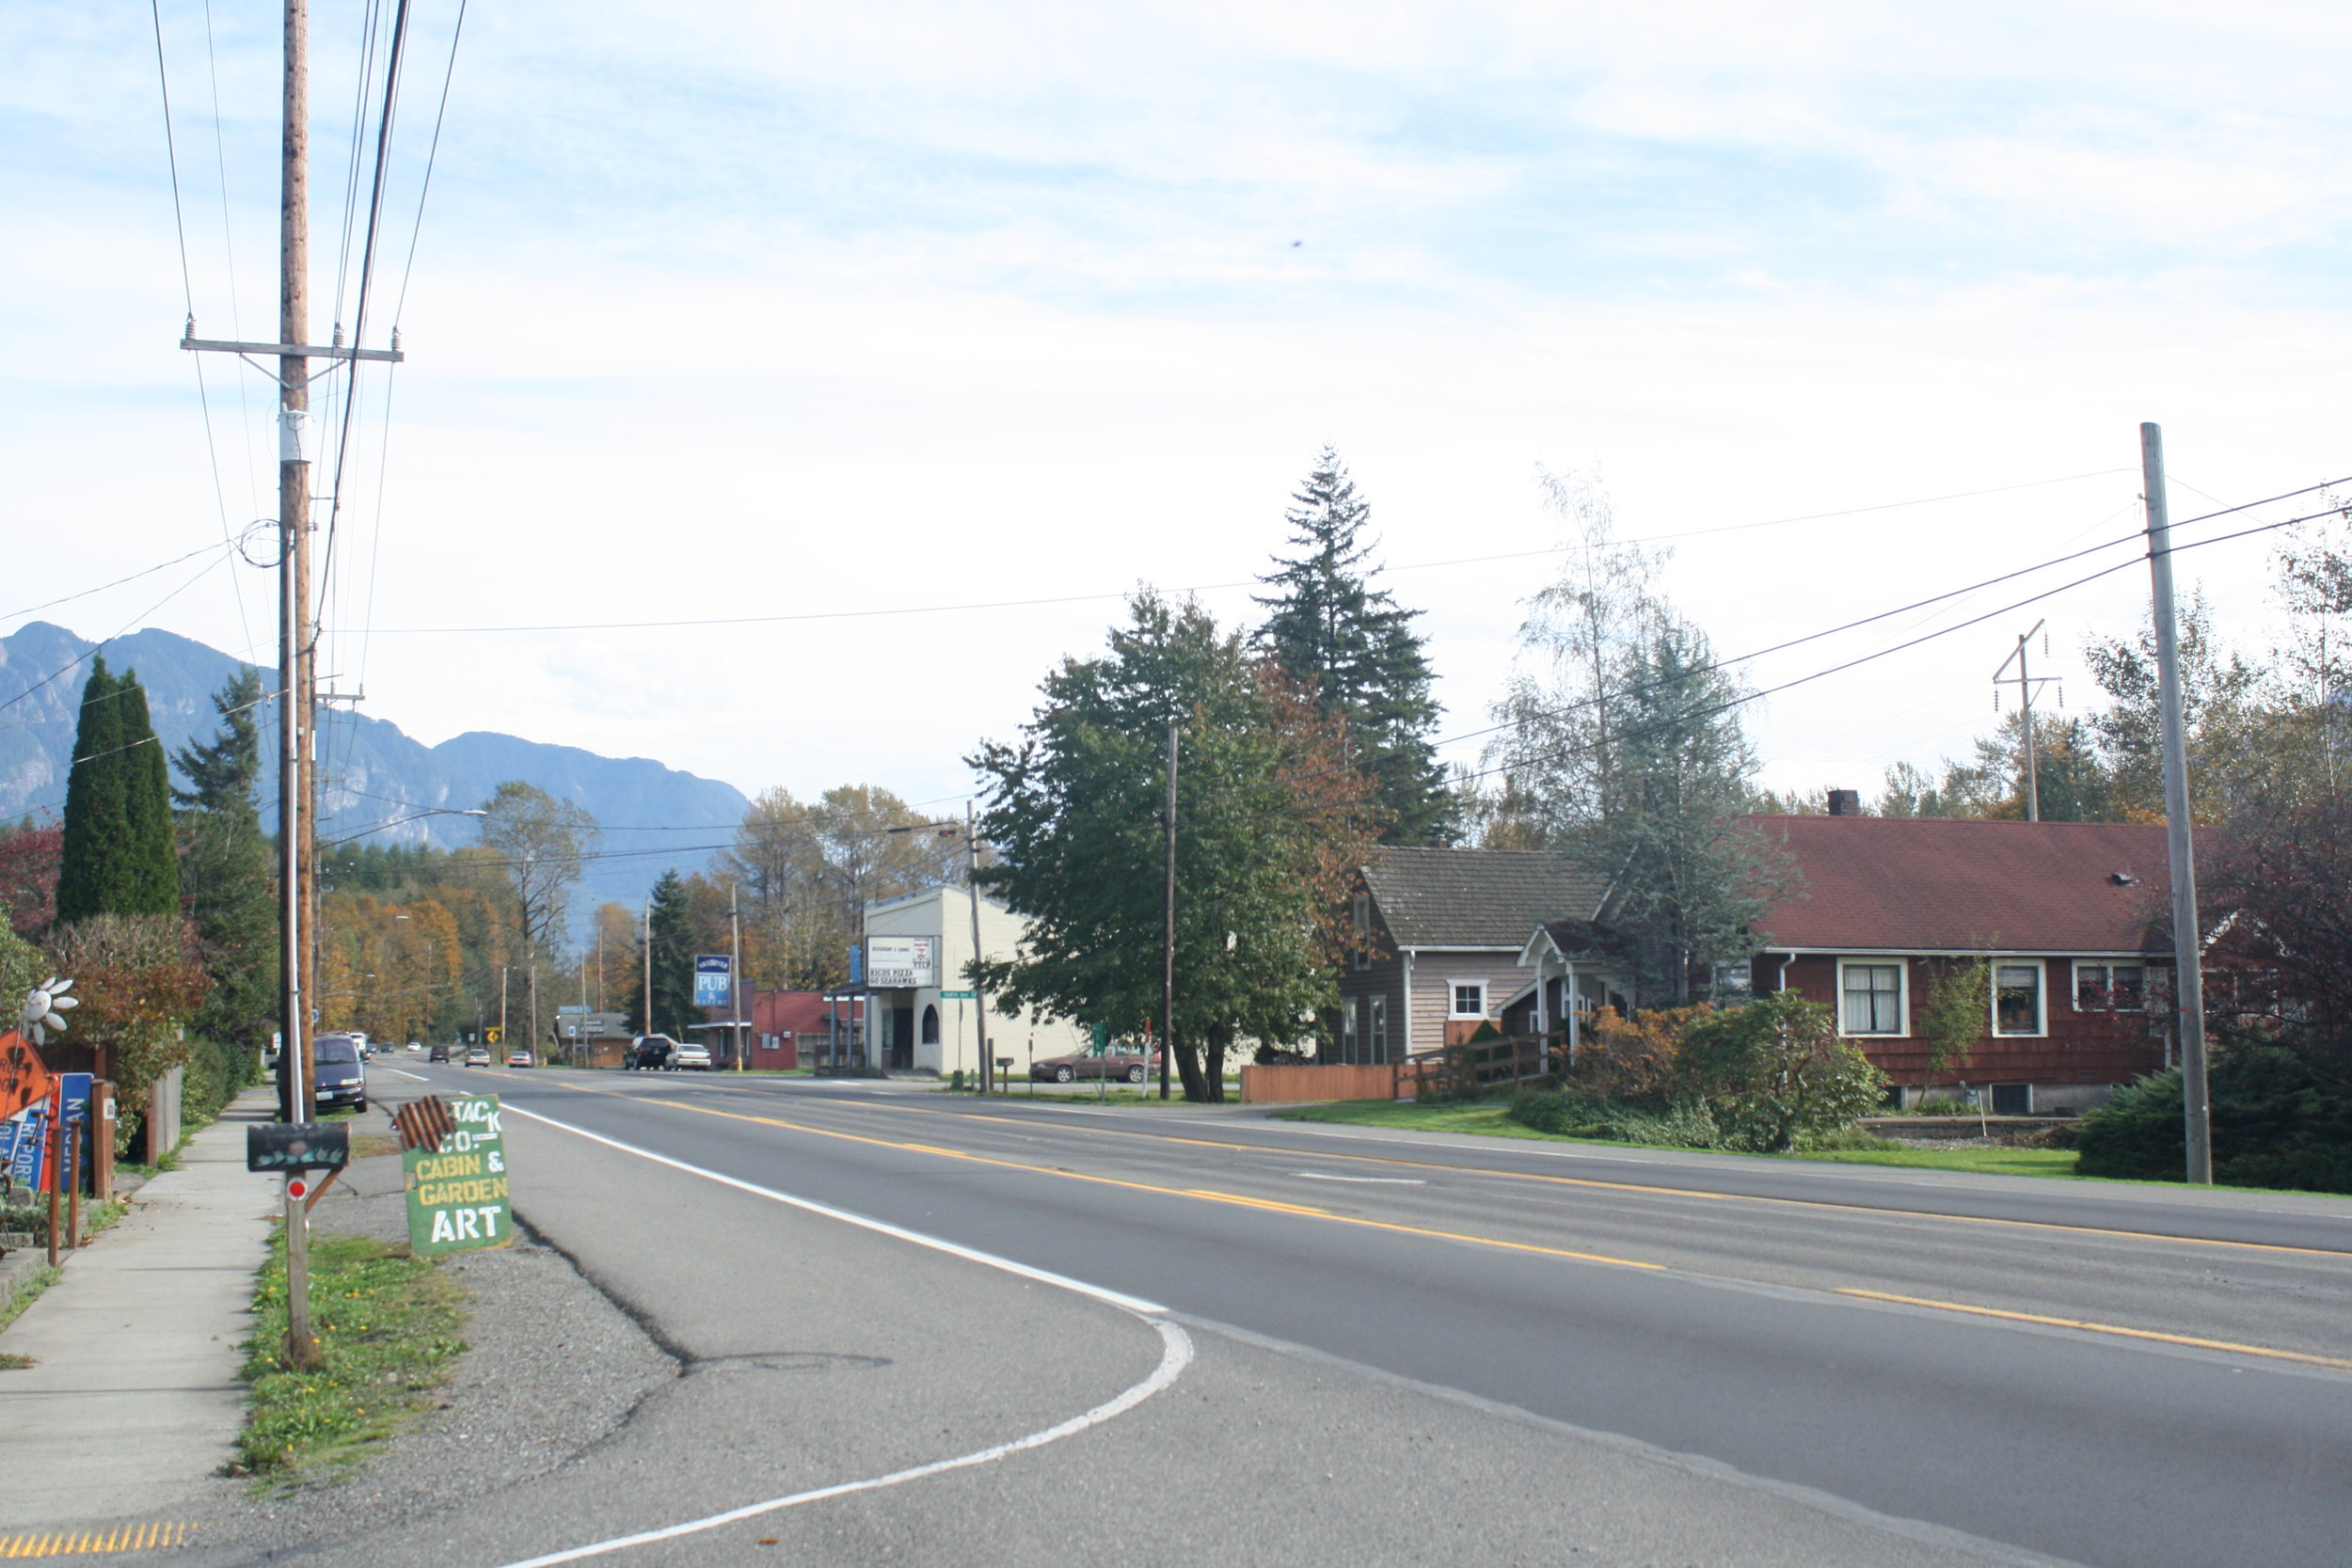 Unincorporated Snohomish County is predominantly rural, but includes some small towns.